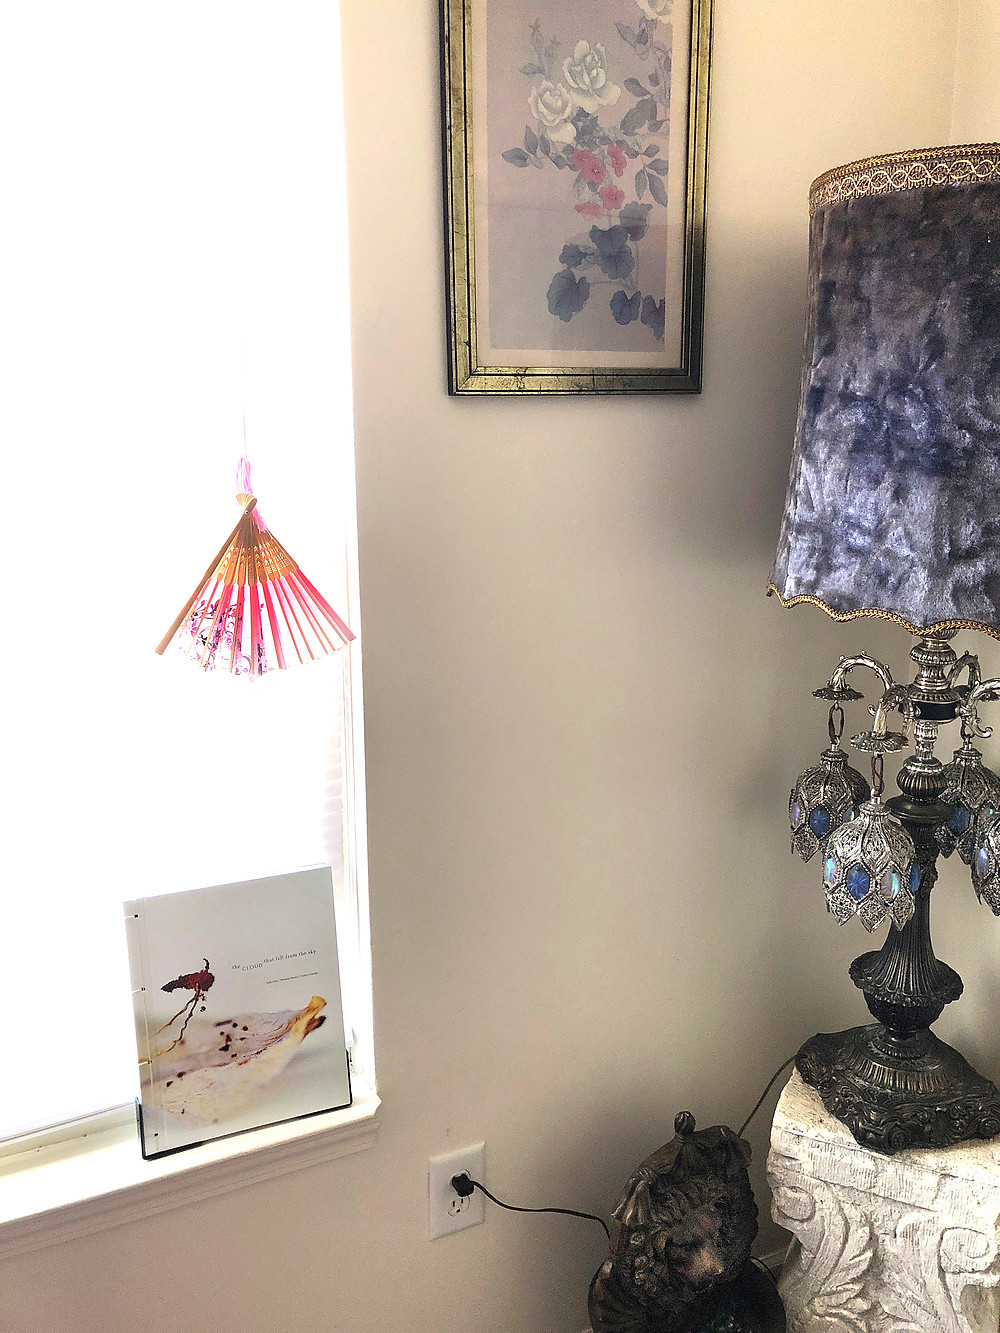 """Image of book """"the CLOUD that fell from the sky"""" in a window below a fan and purple, velvet vintage lamp."""